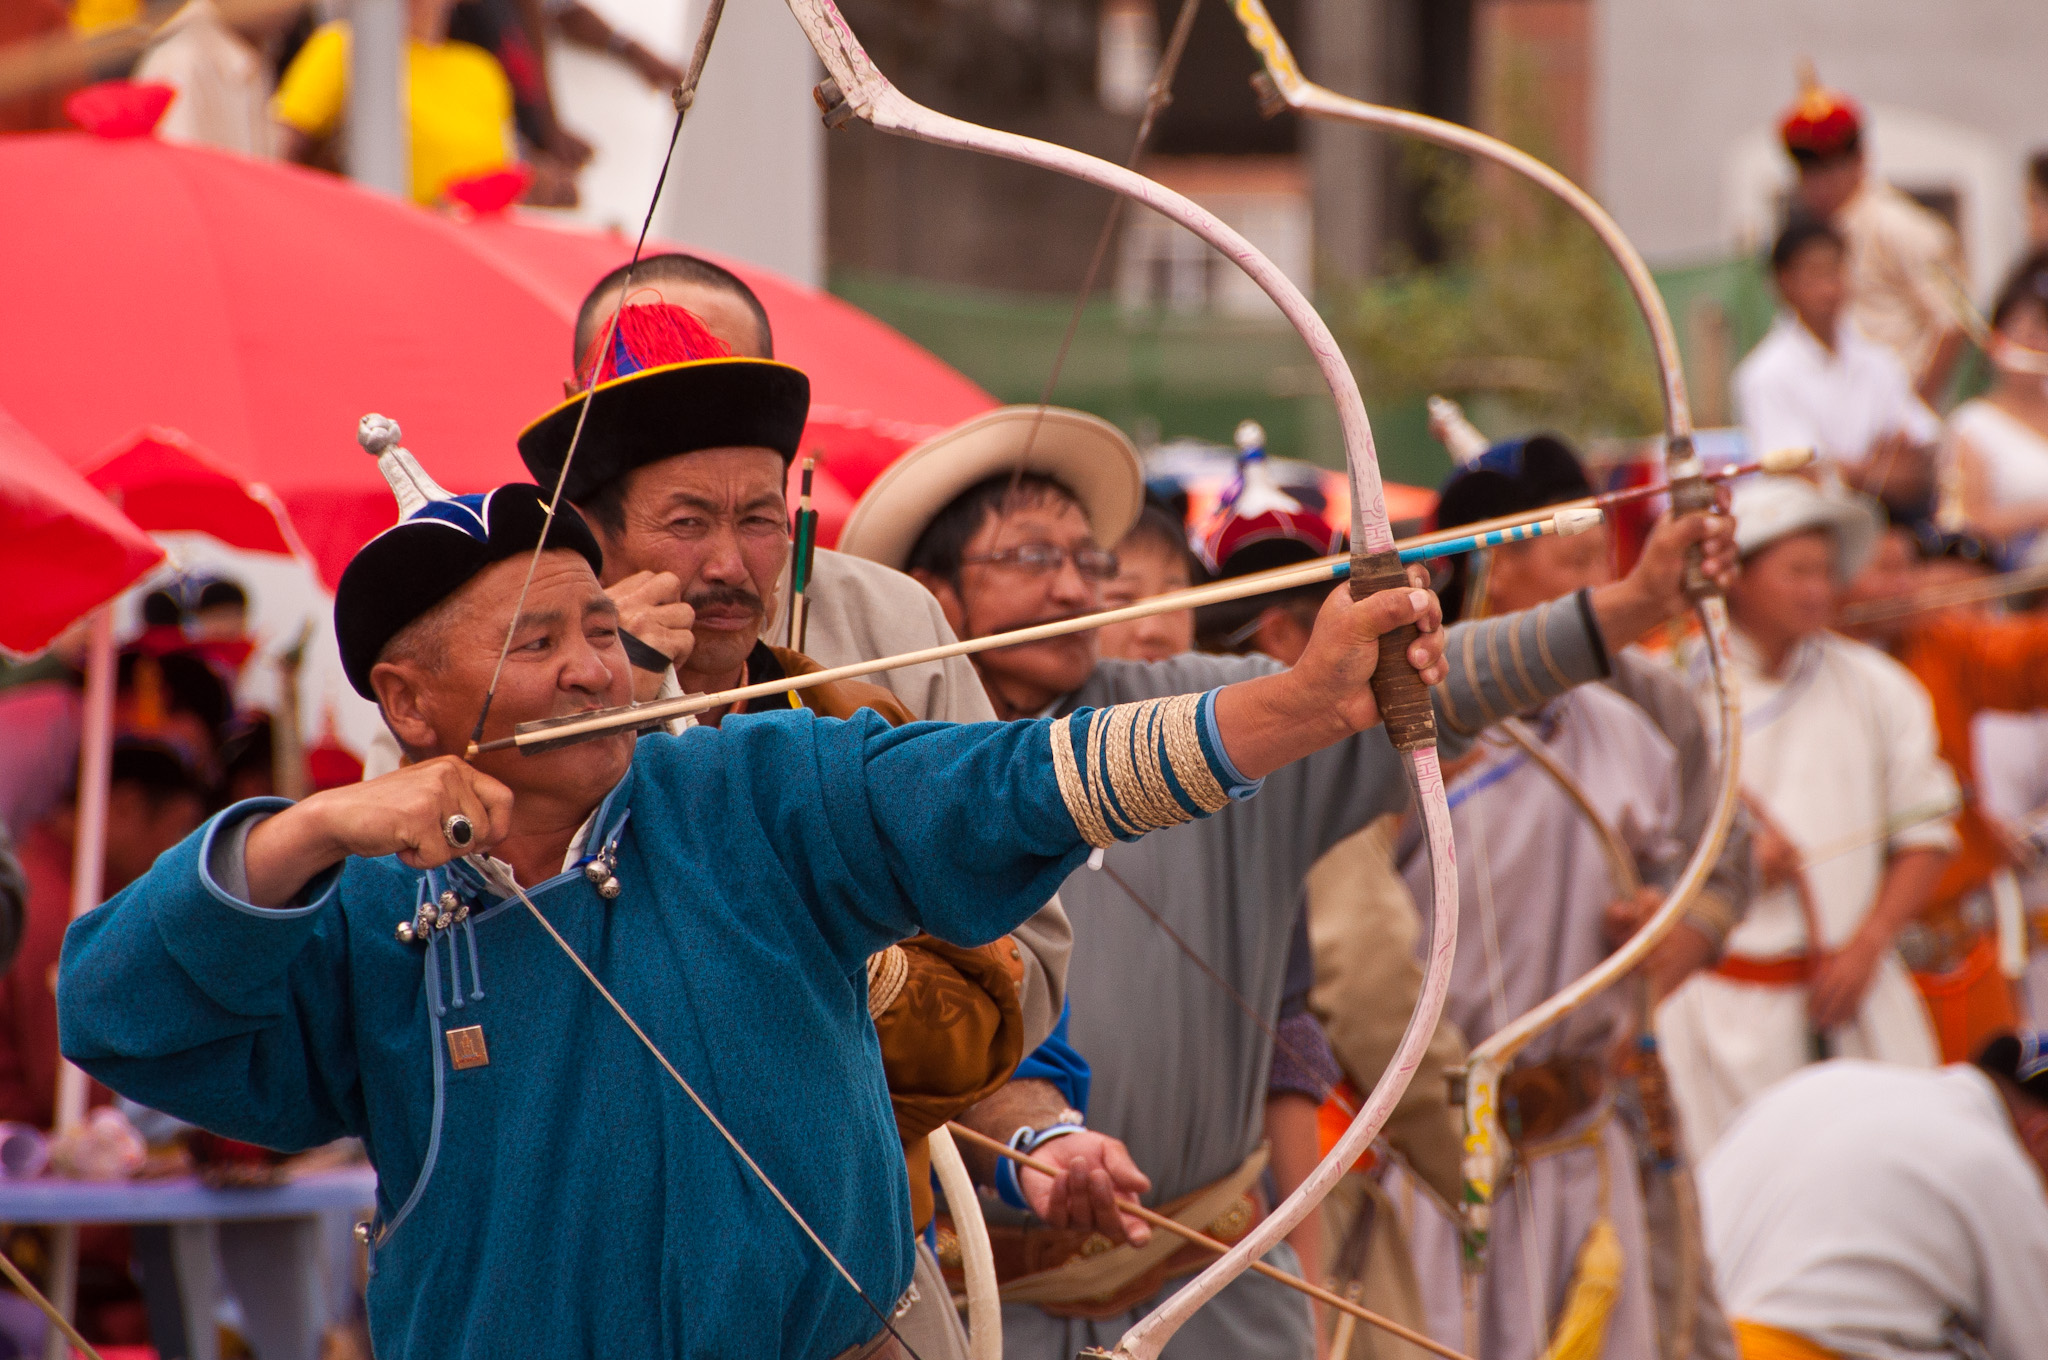 A line of archers take their stand (image courtesy of Mark Fischer)